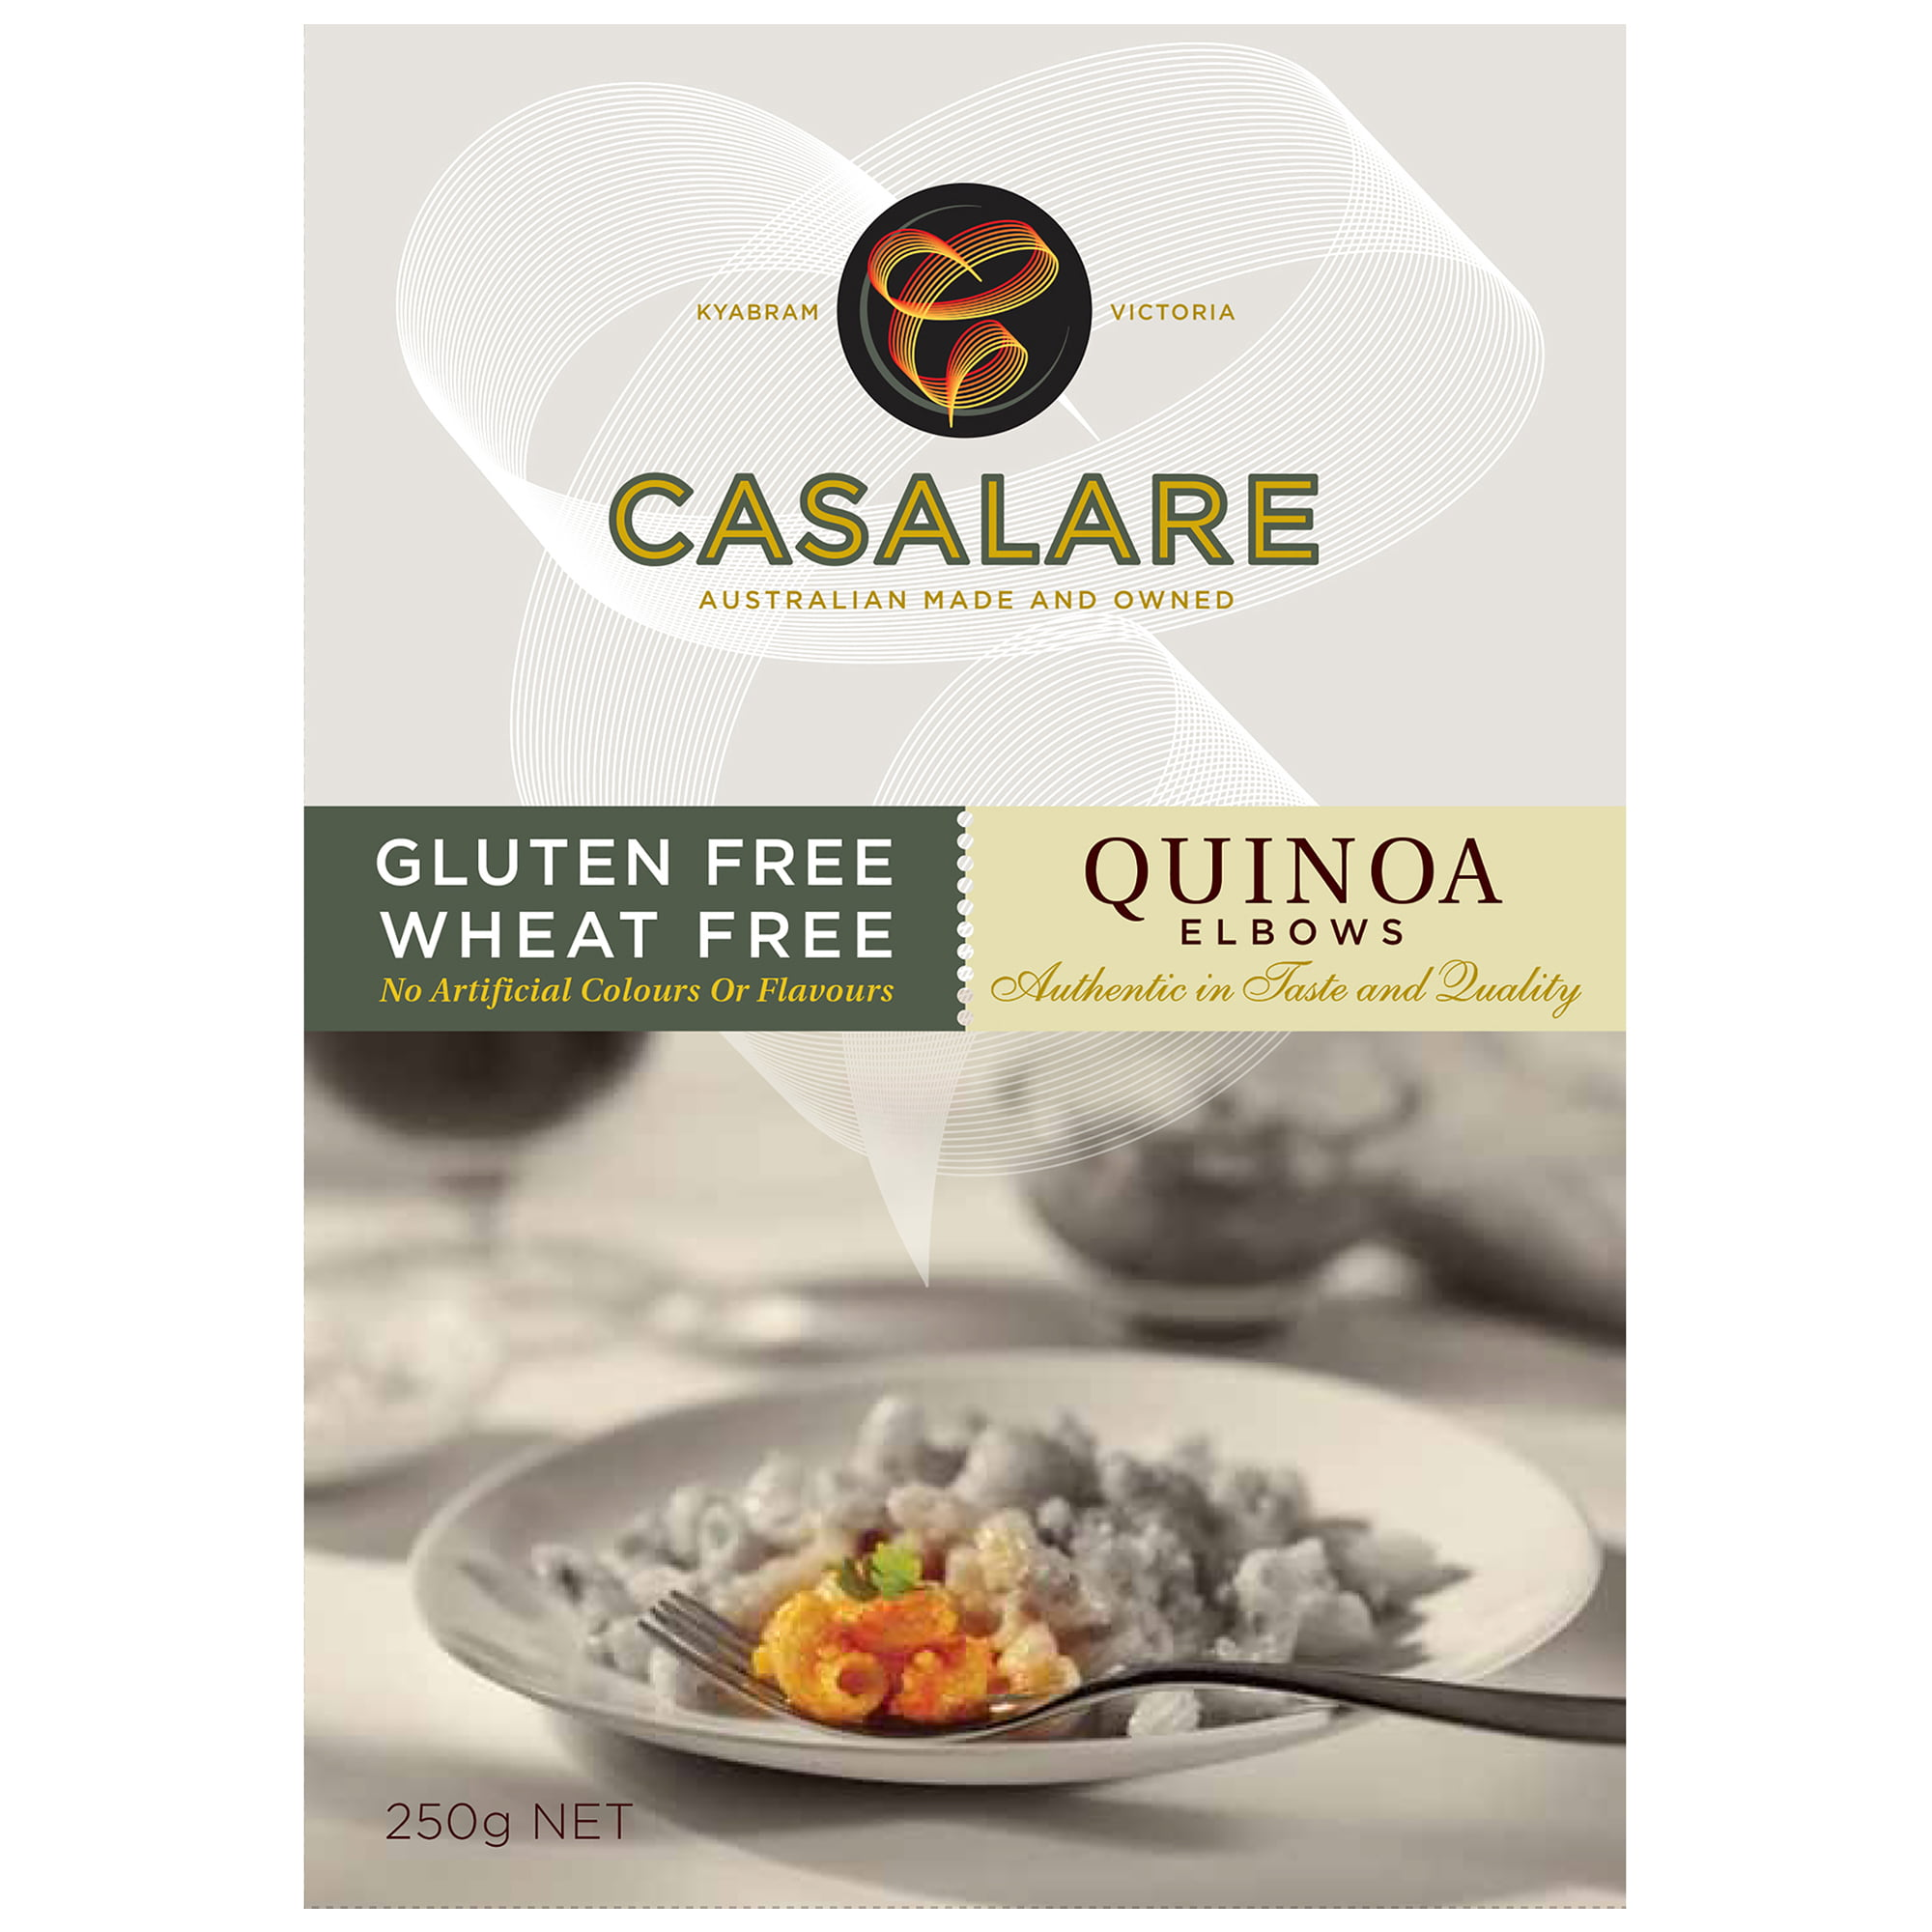 casalare quinoa elbows box FA copy